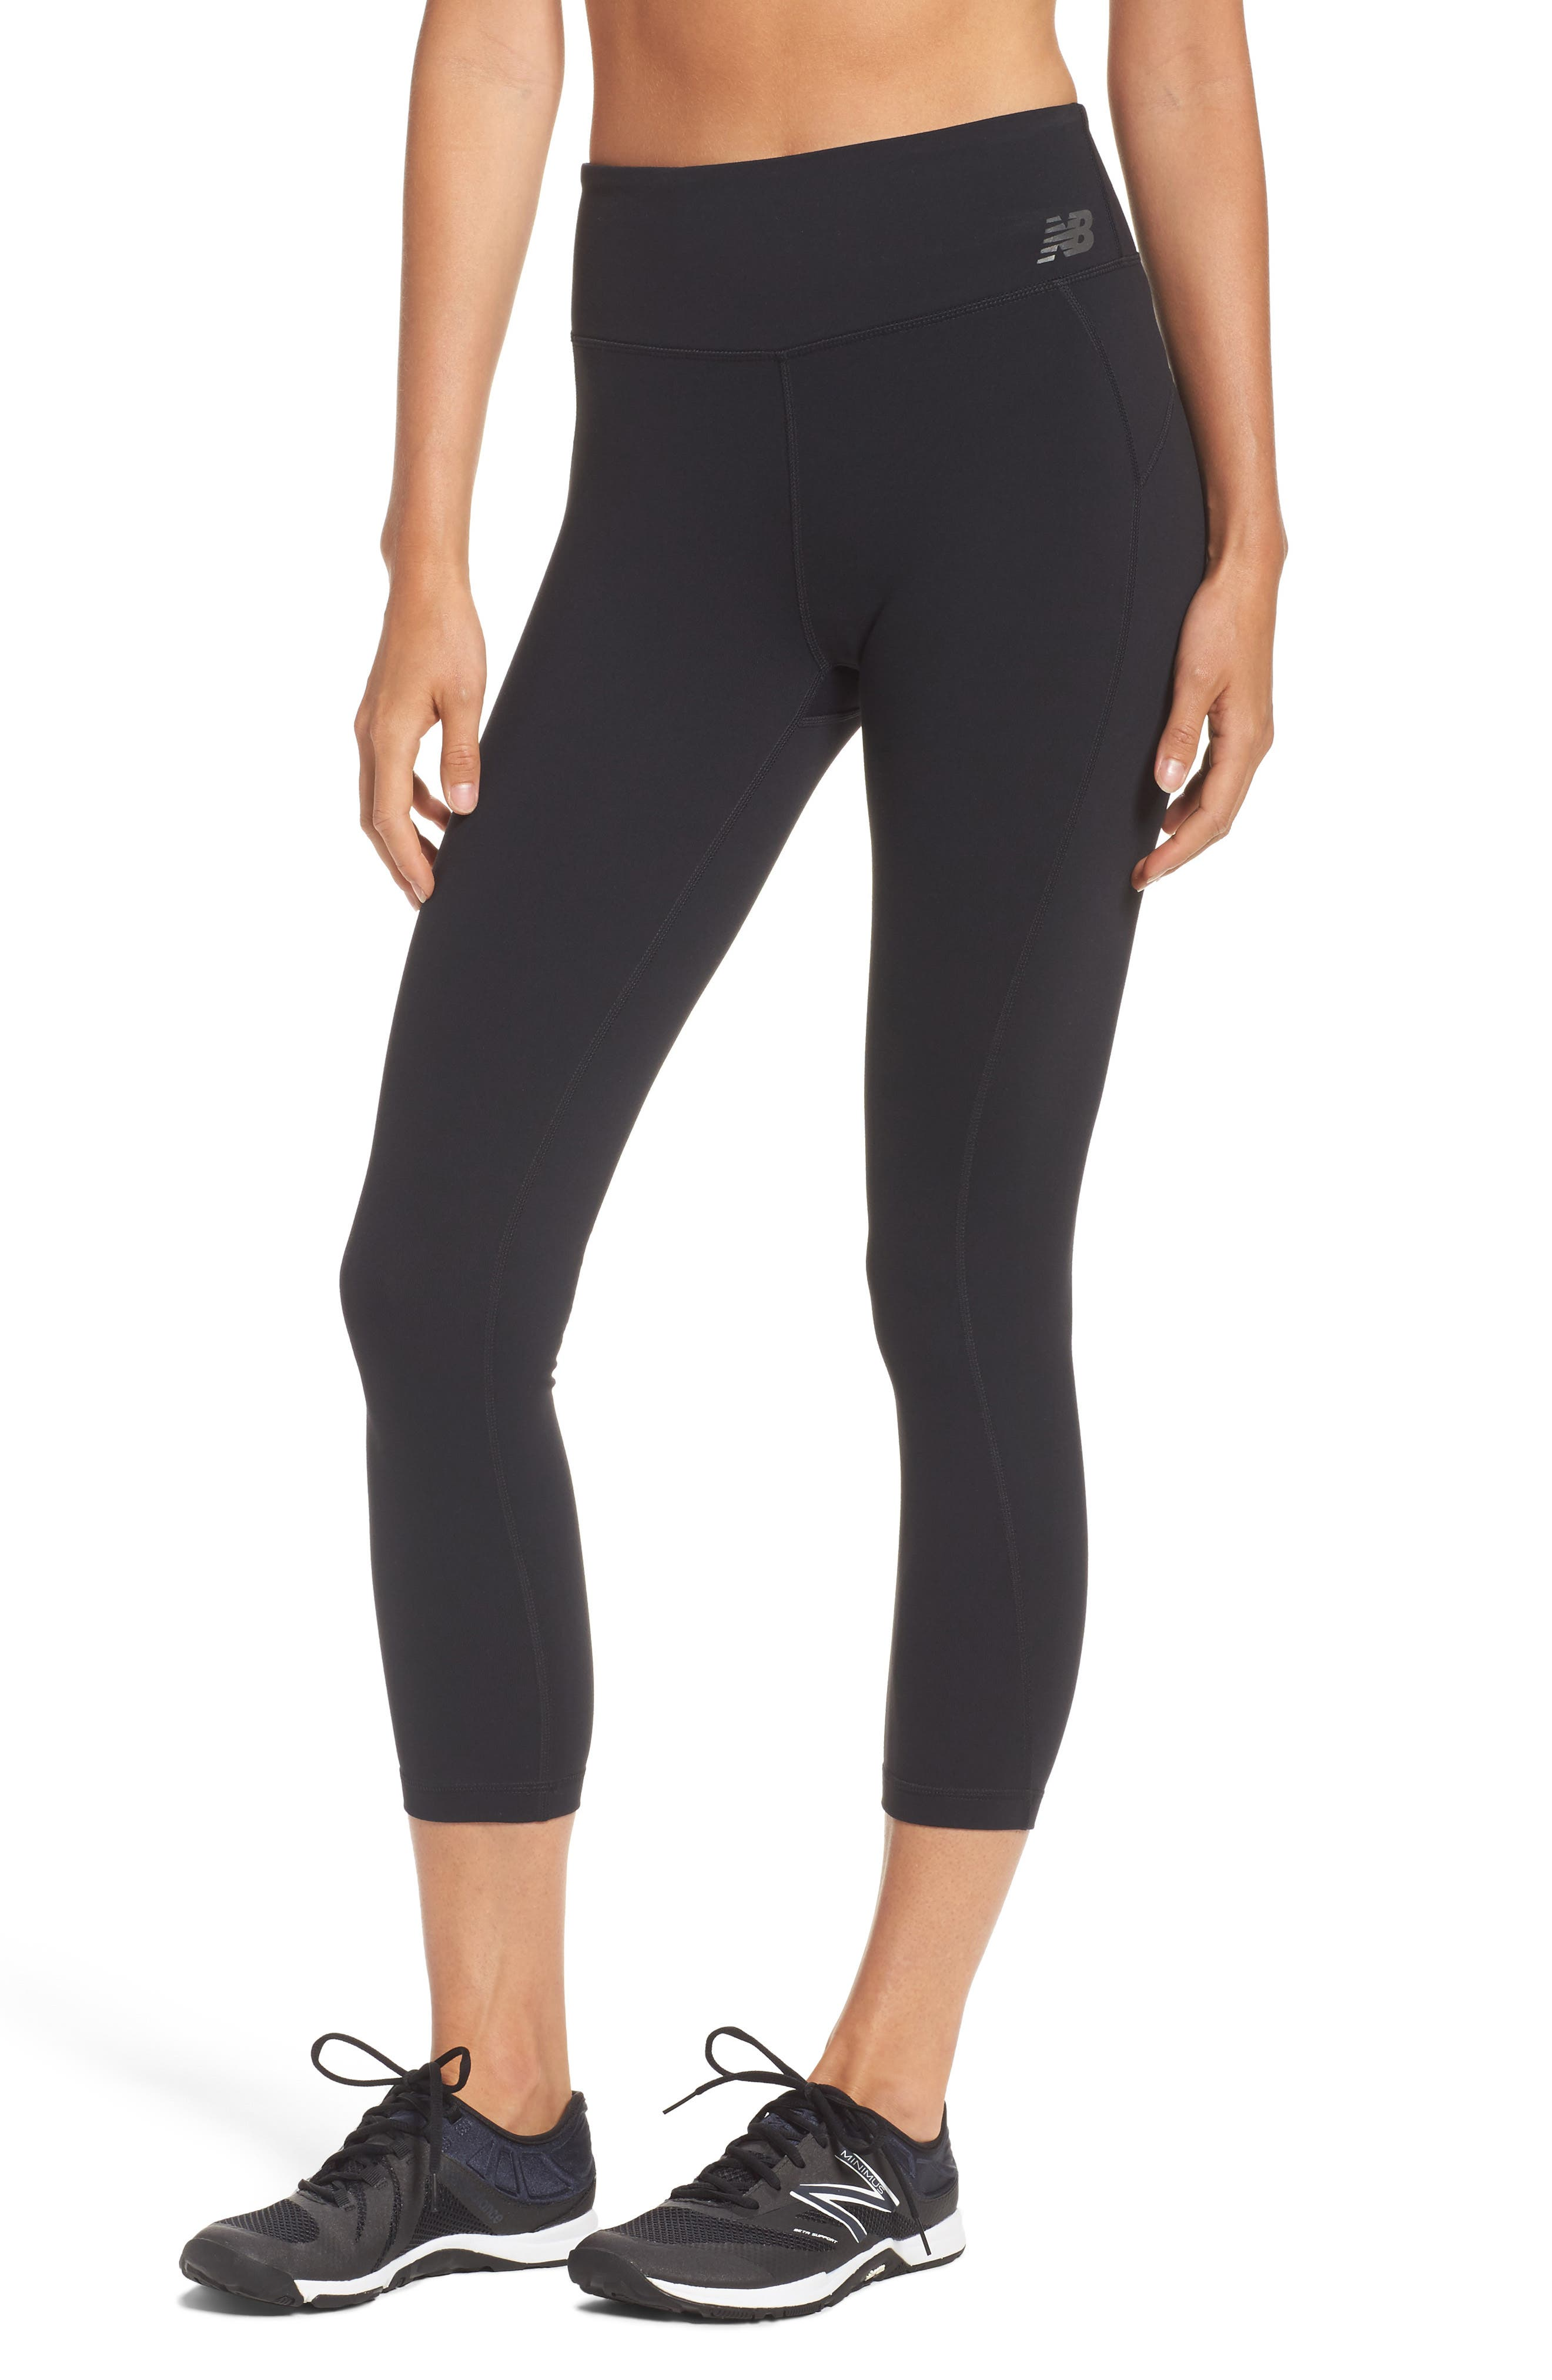 New Balance 71149 High Waist Crop Leggings